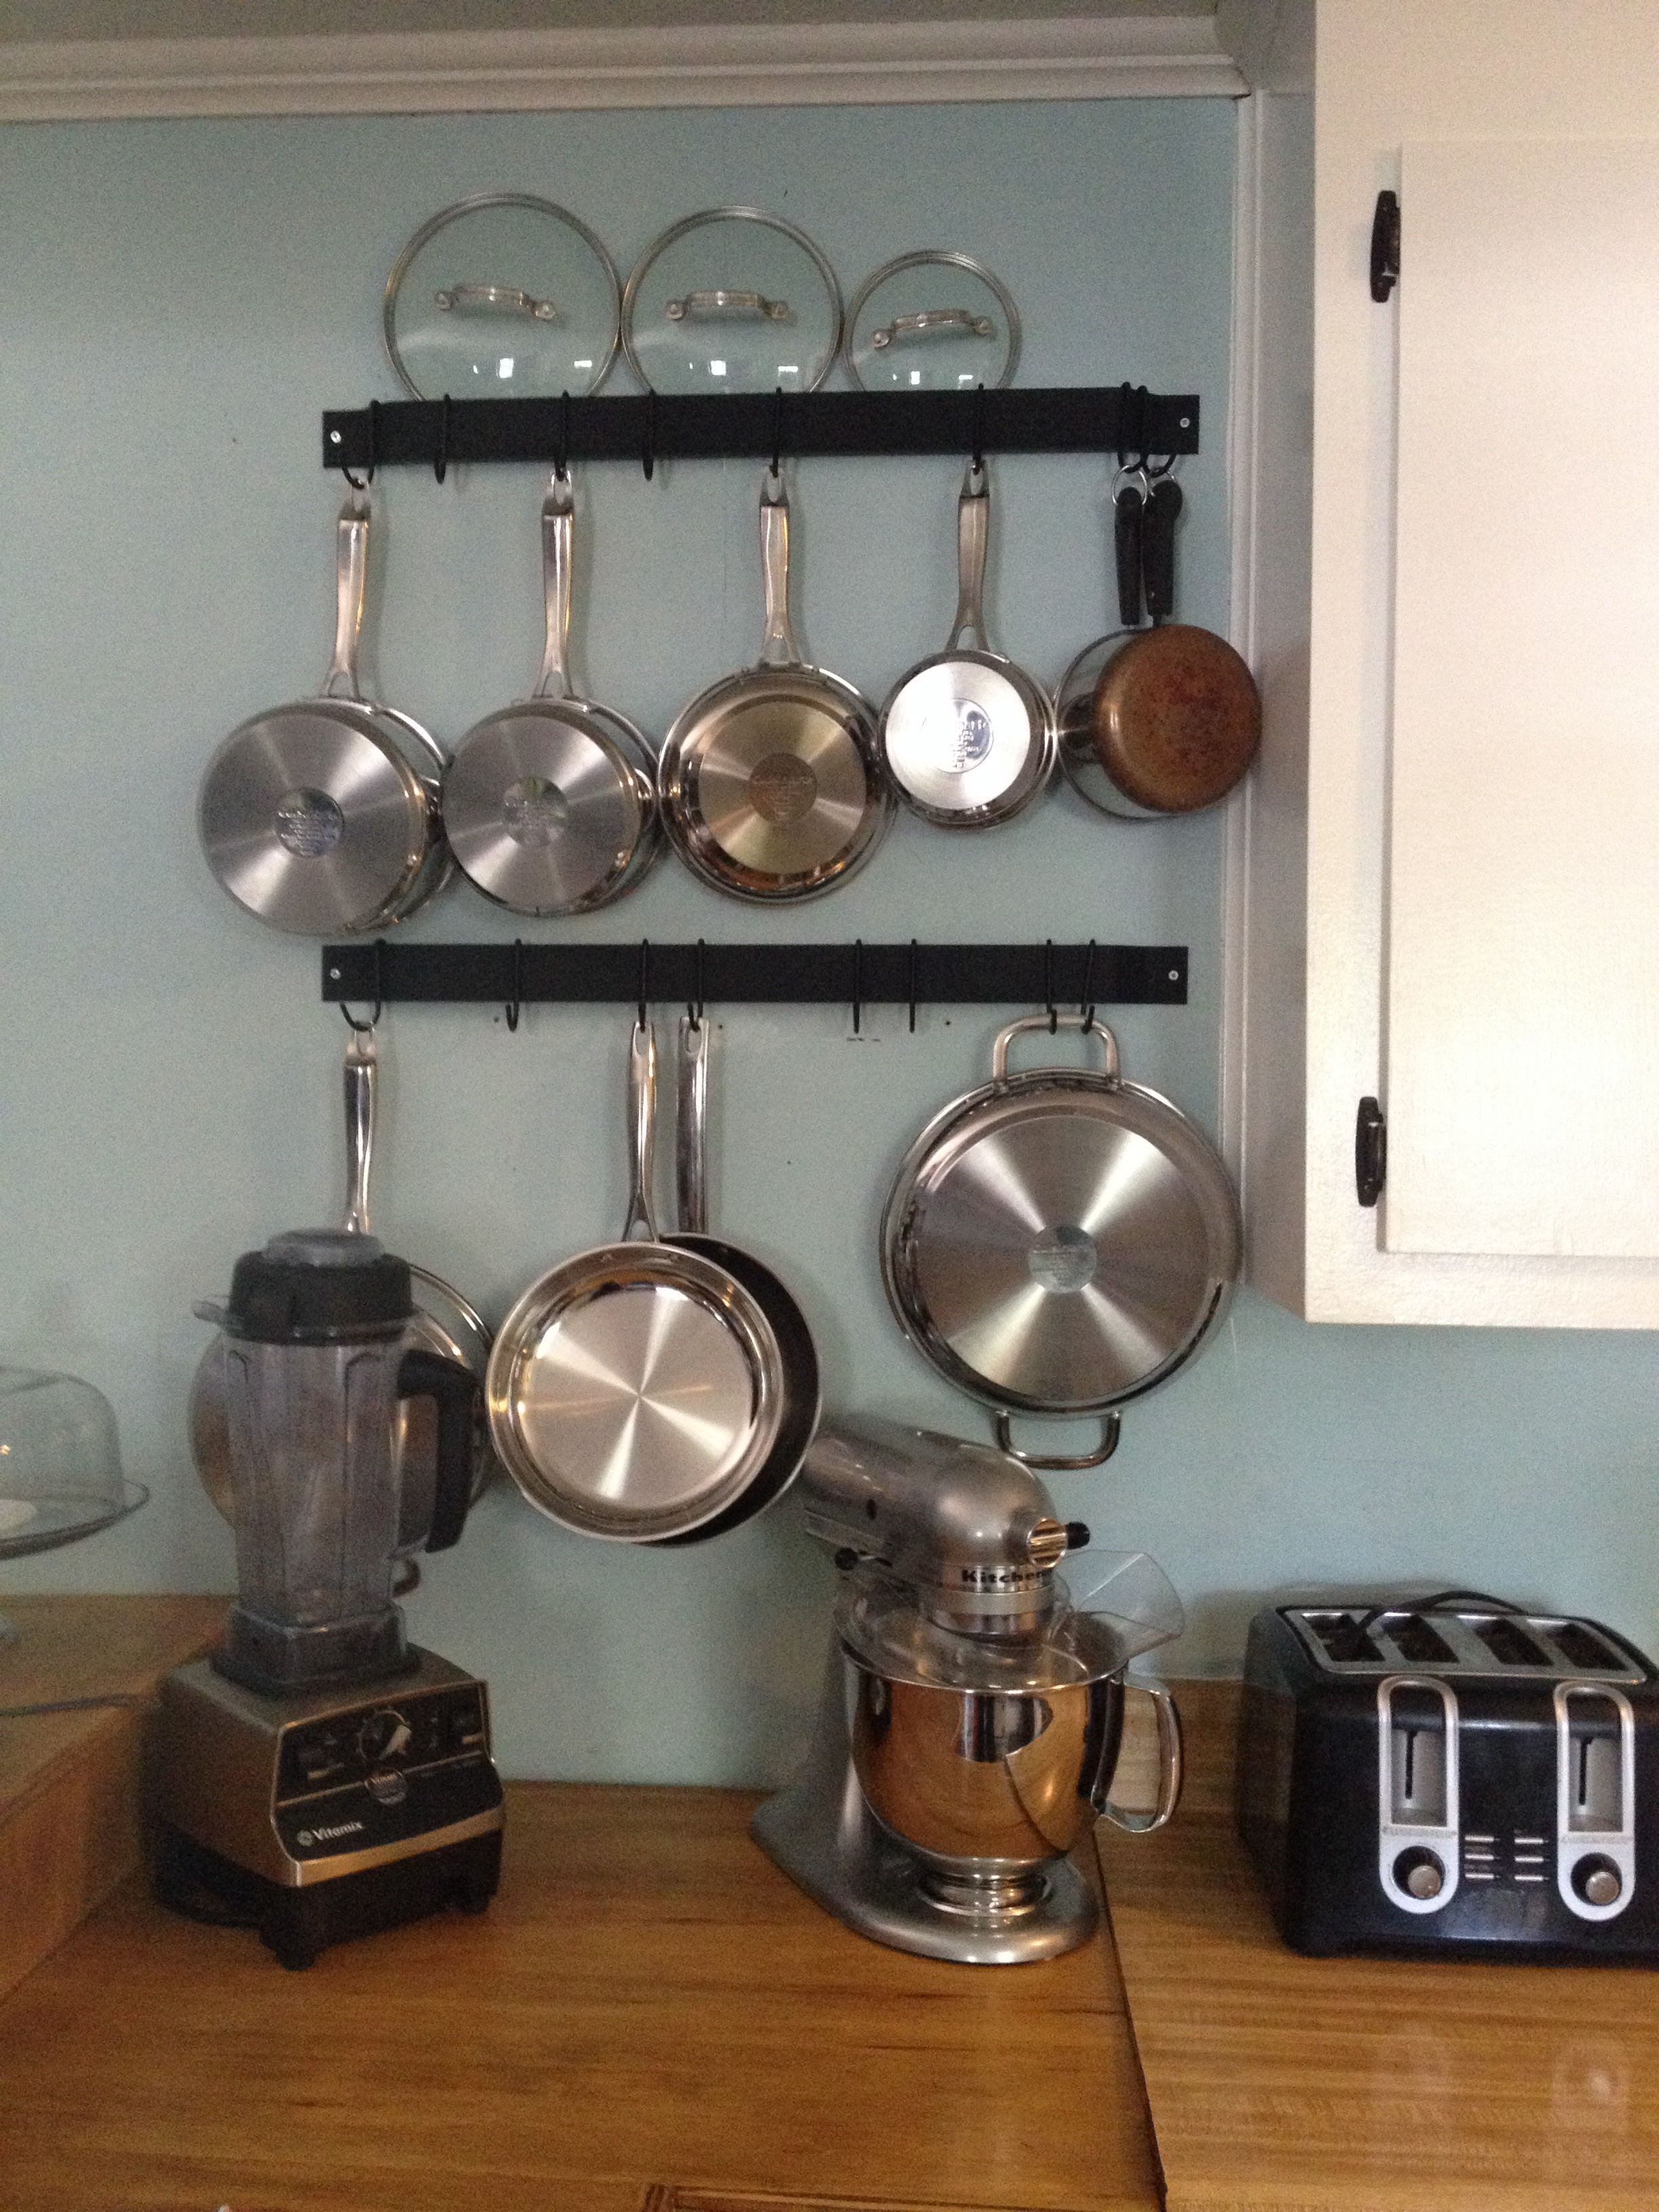 Hung pot rack by myself! LUV how neat and simple it looks. | Die ...